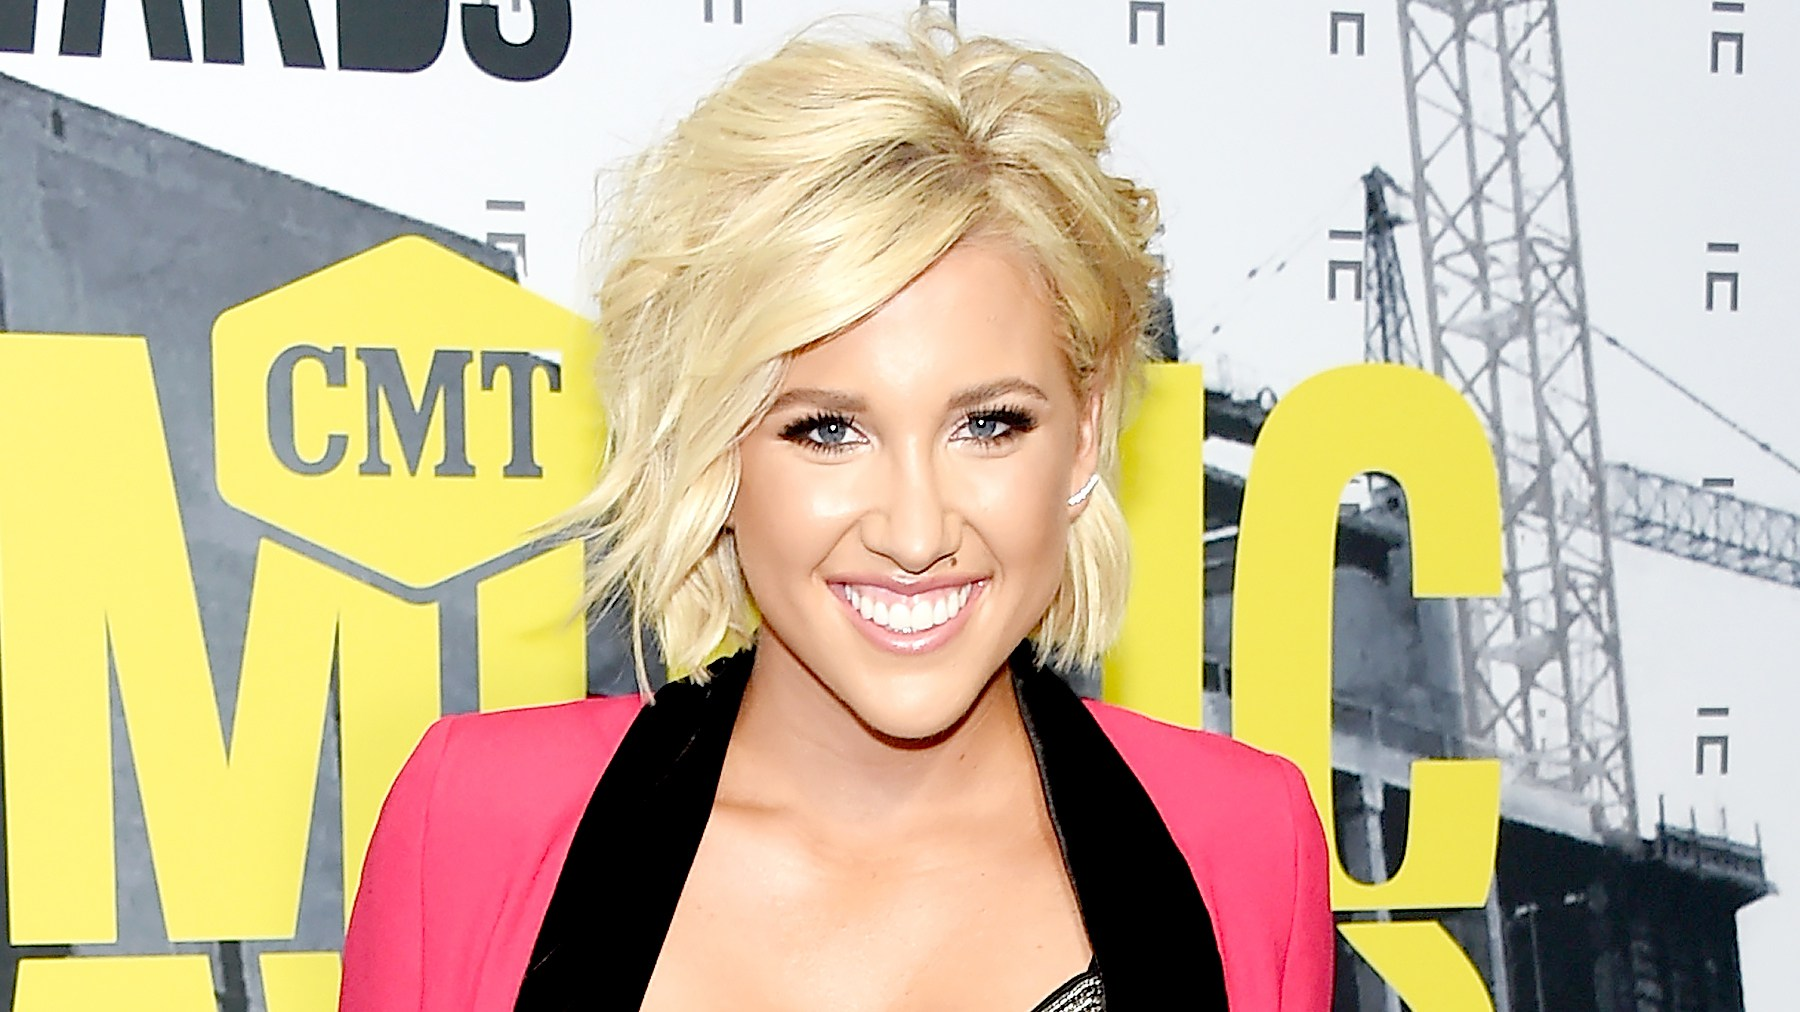 Savannah Chrisley attends the 2017 CMT Music Awards at the Music City Center on June 7, 2017 in Nashville, Tennessee.